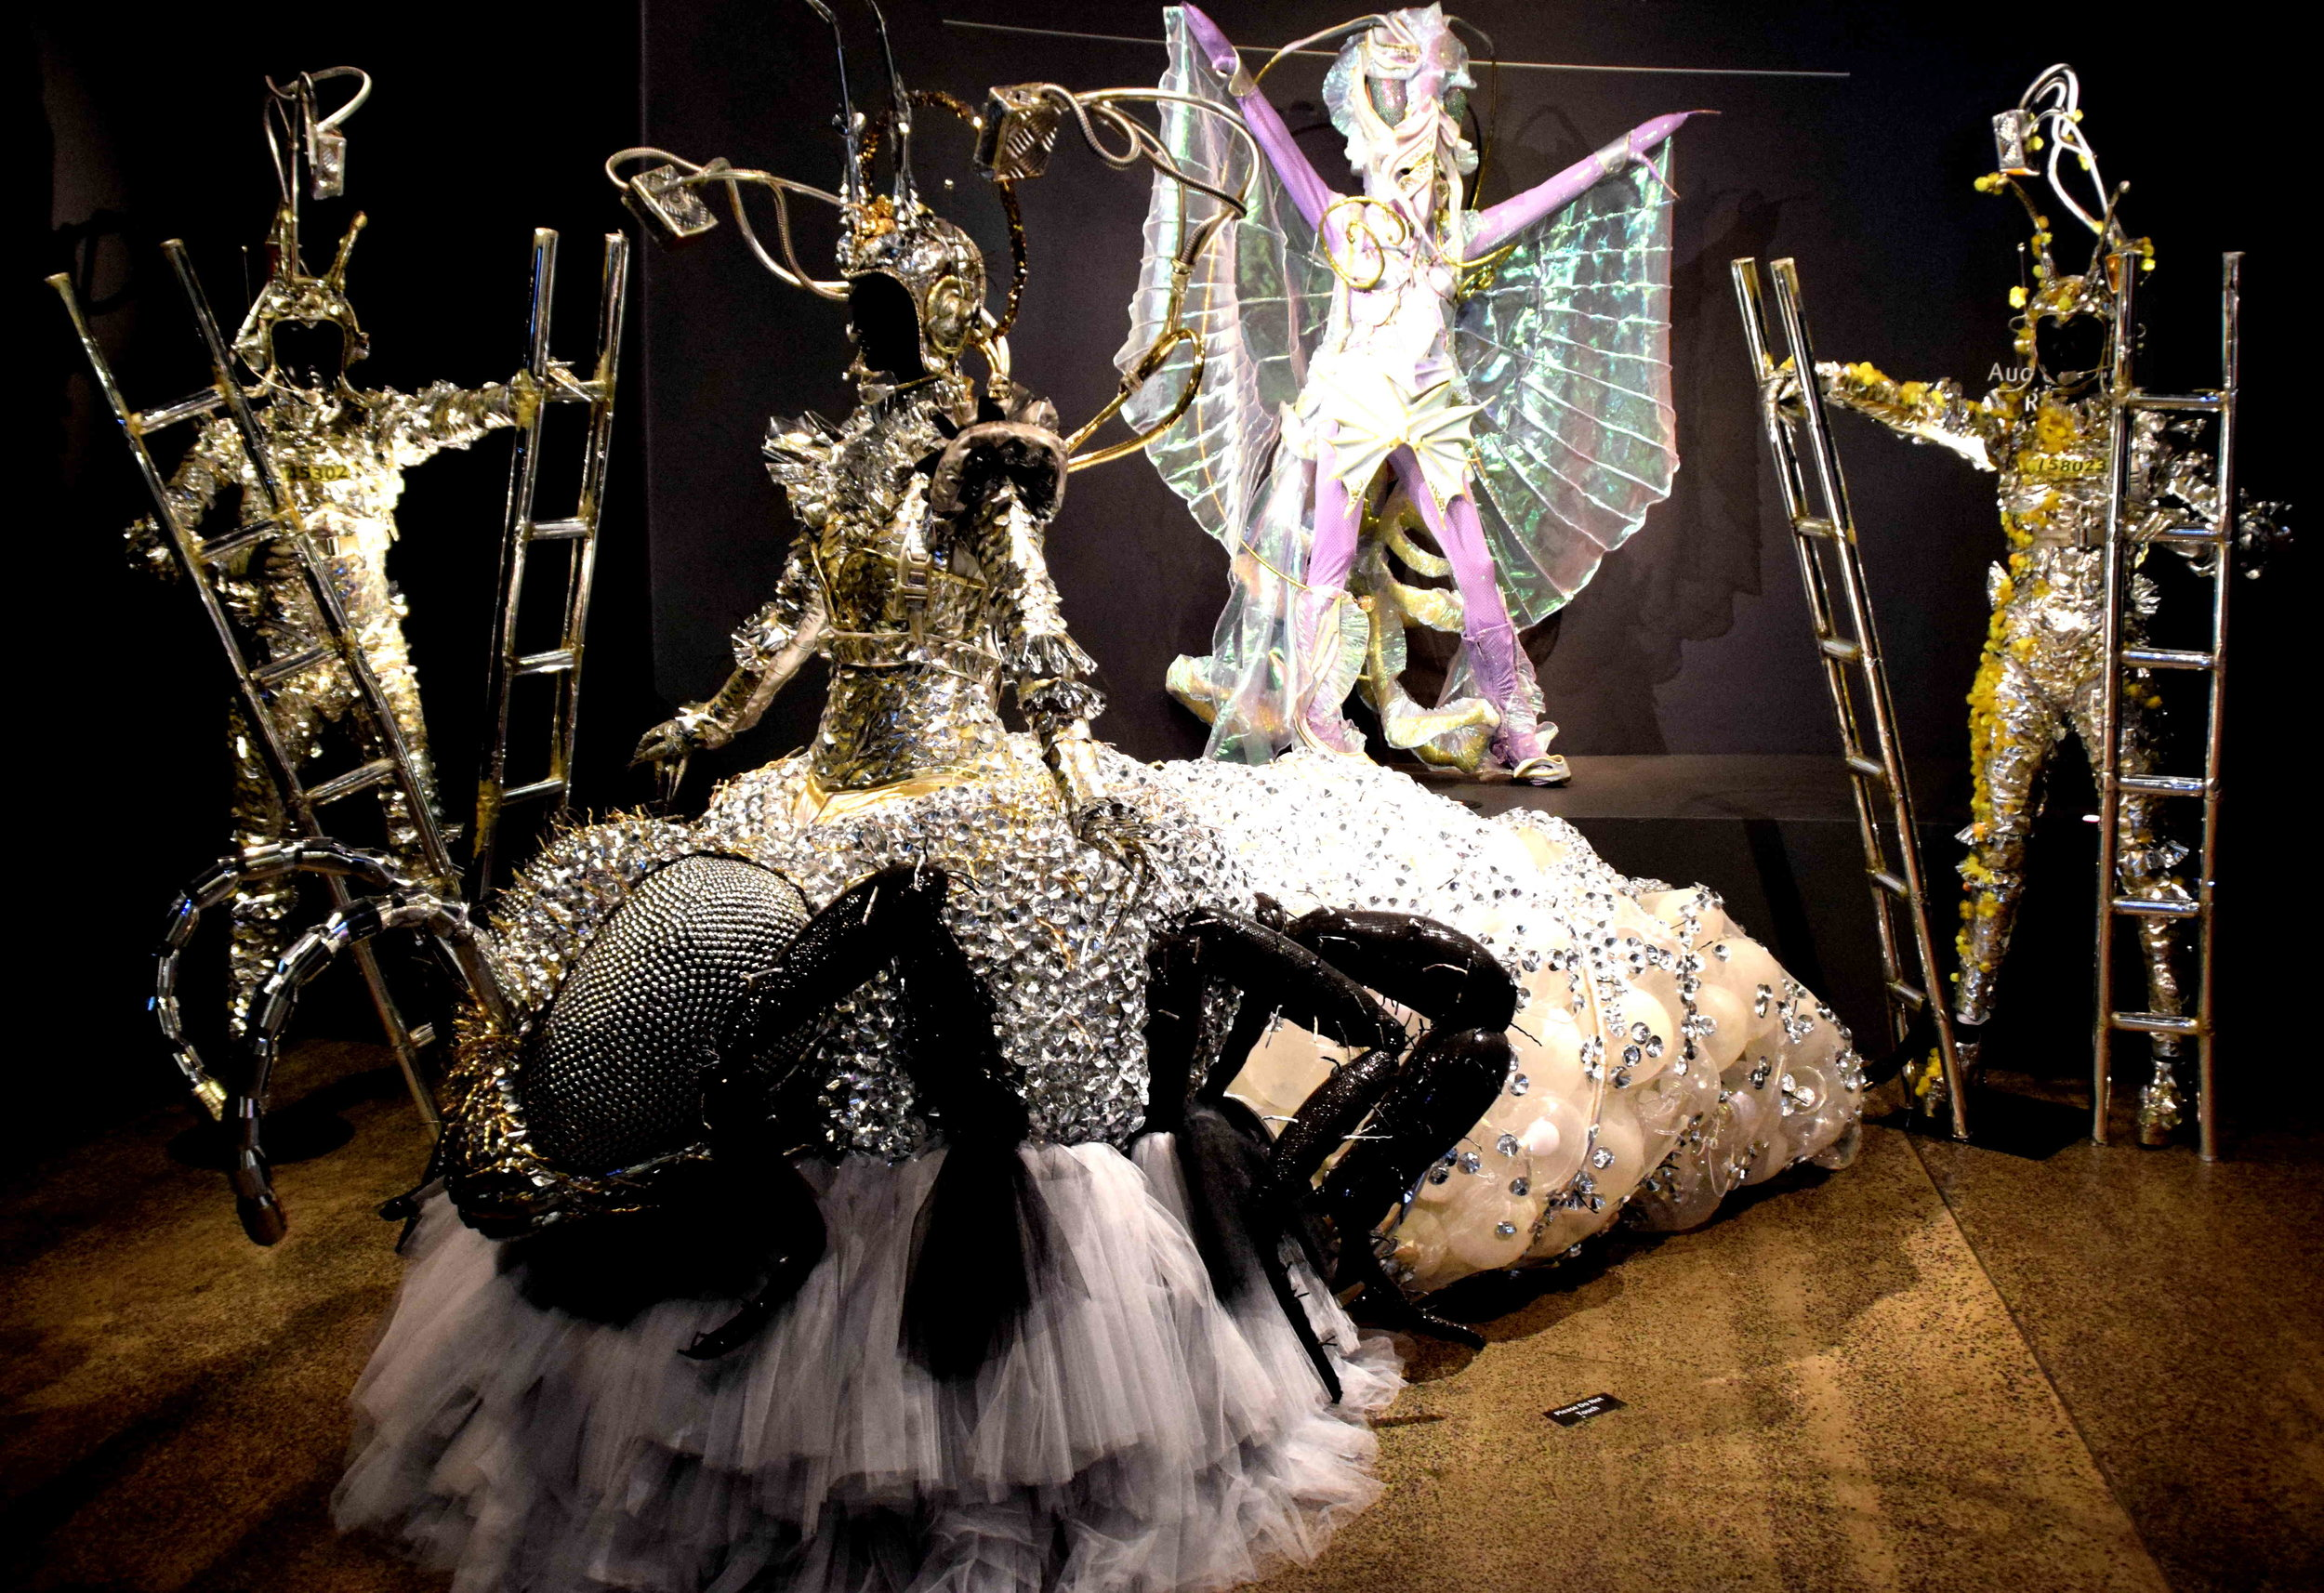 A previous year's award winning WearableArt garment on display in the gallery